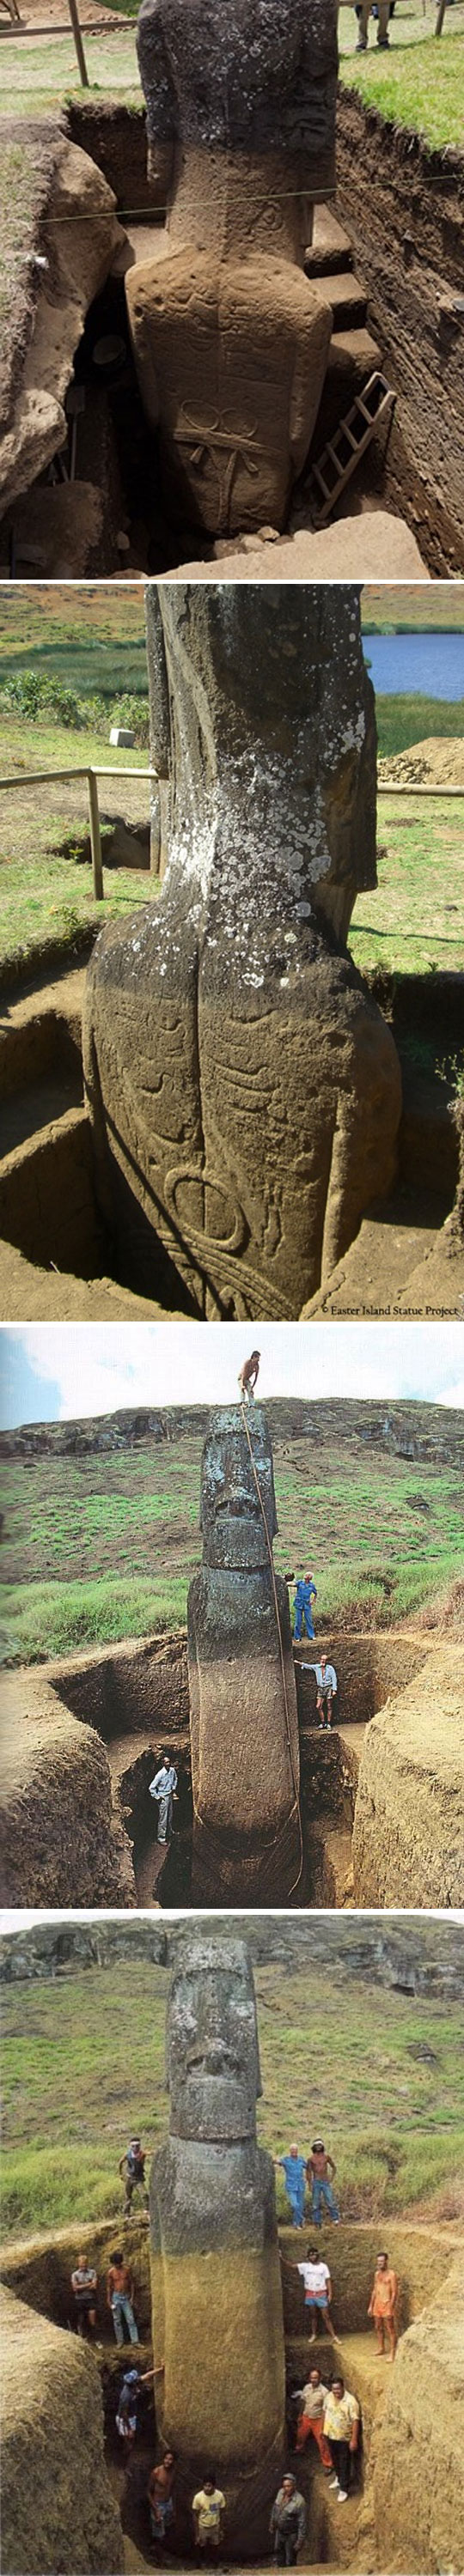 cool-Easter-Island-heads-bodies-buried